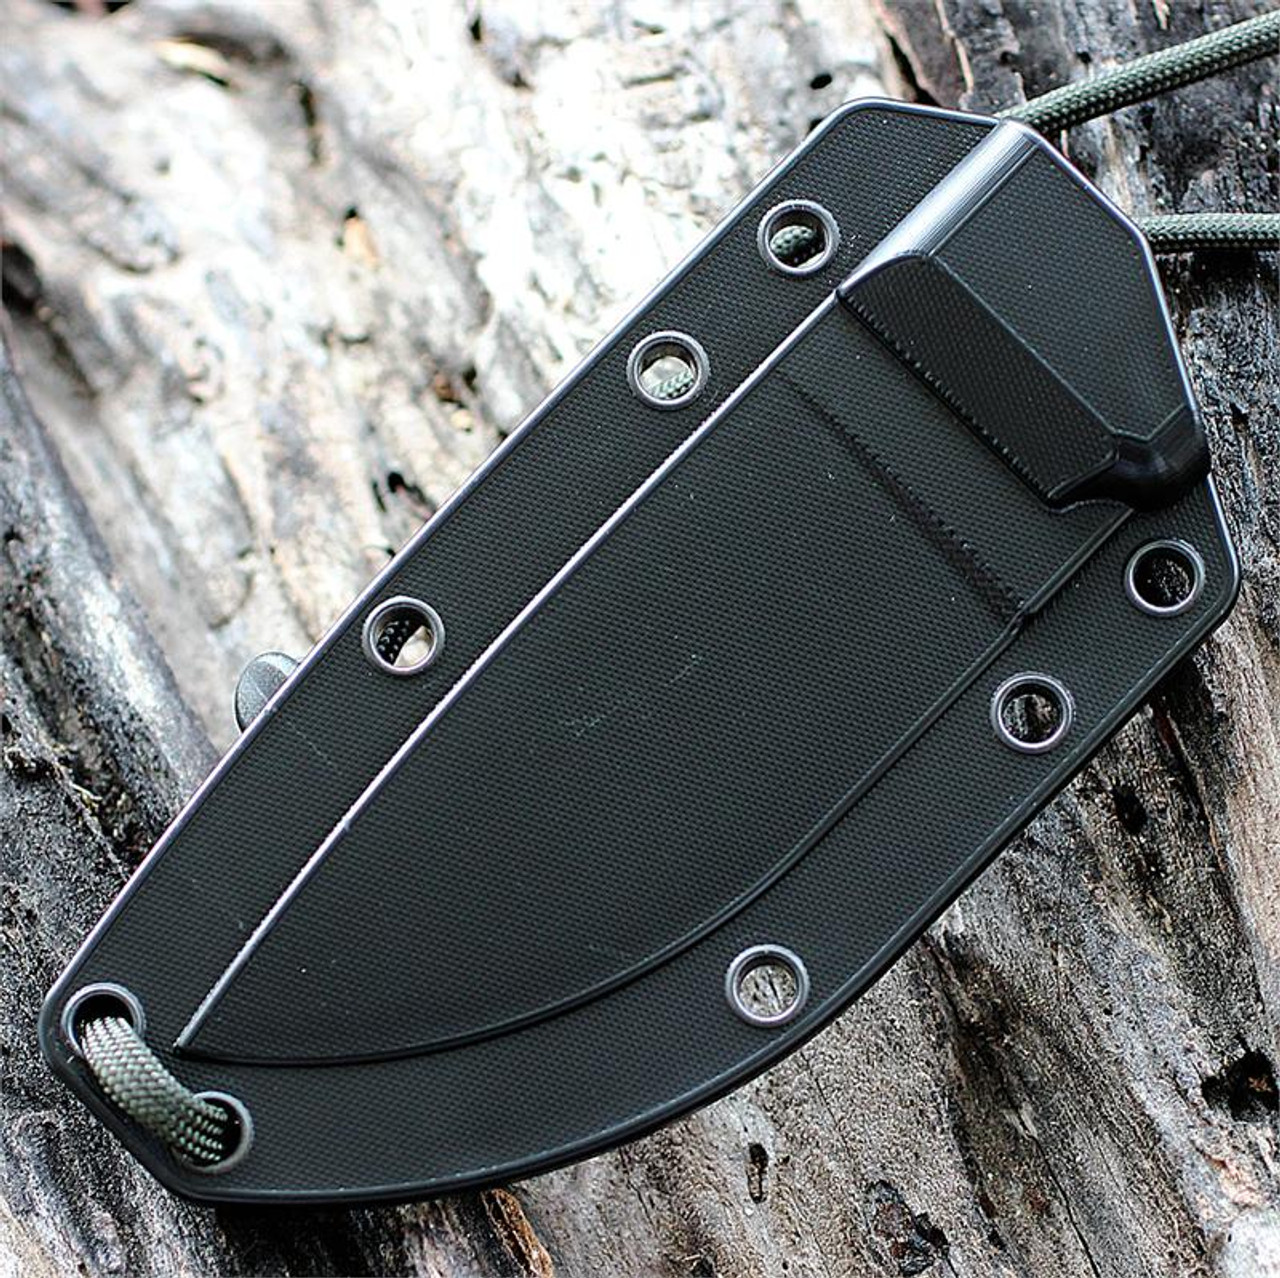 ESEE Knives, 3P-TG-B Tactical Gray Plain Edge with Black G-10 Handles and Molded Sheath